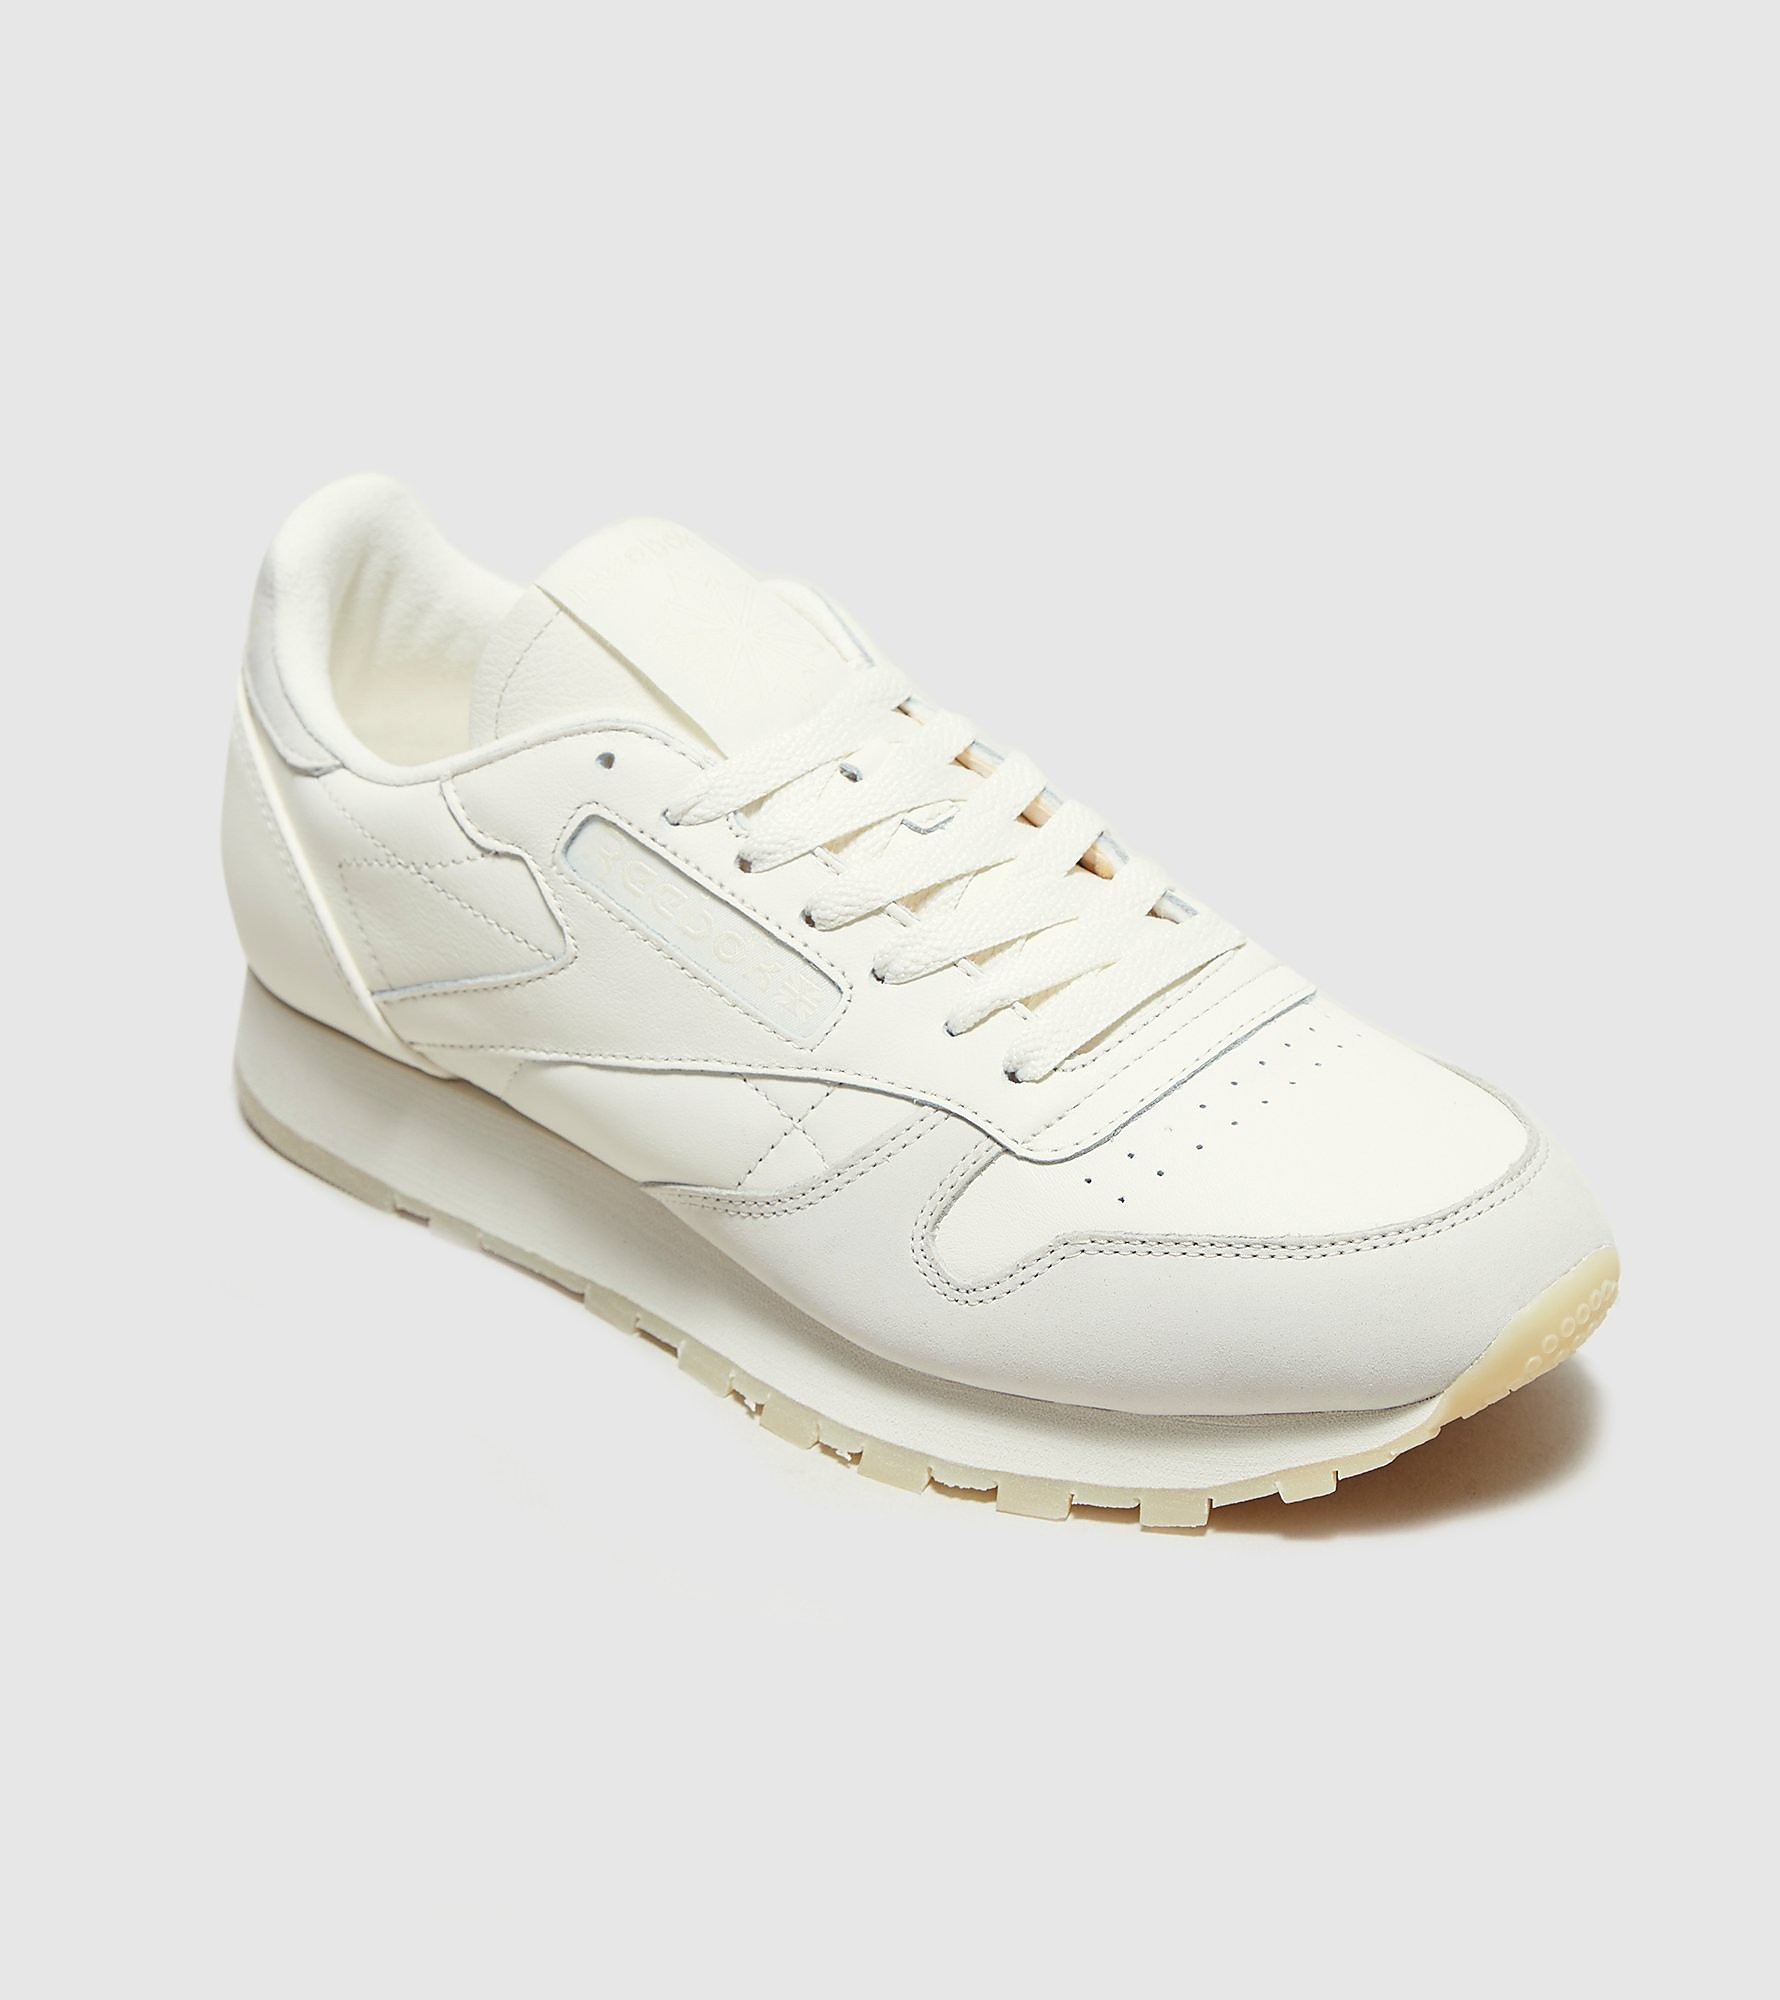 Reebok Classic Leather 'Butter Soft' Pack